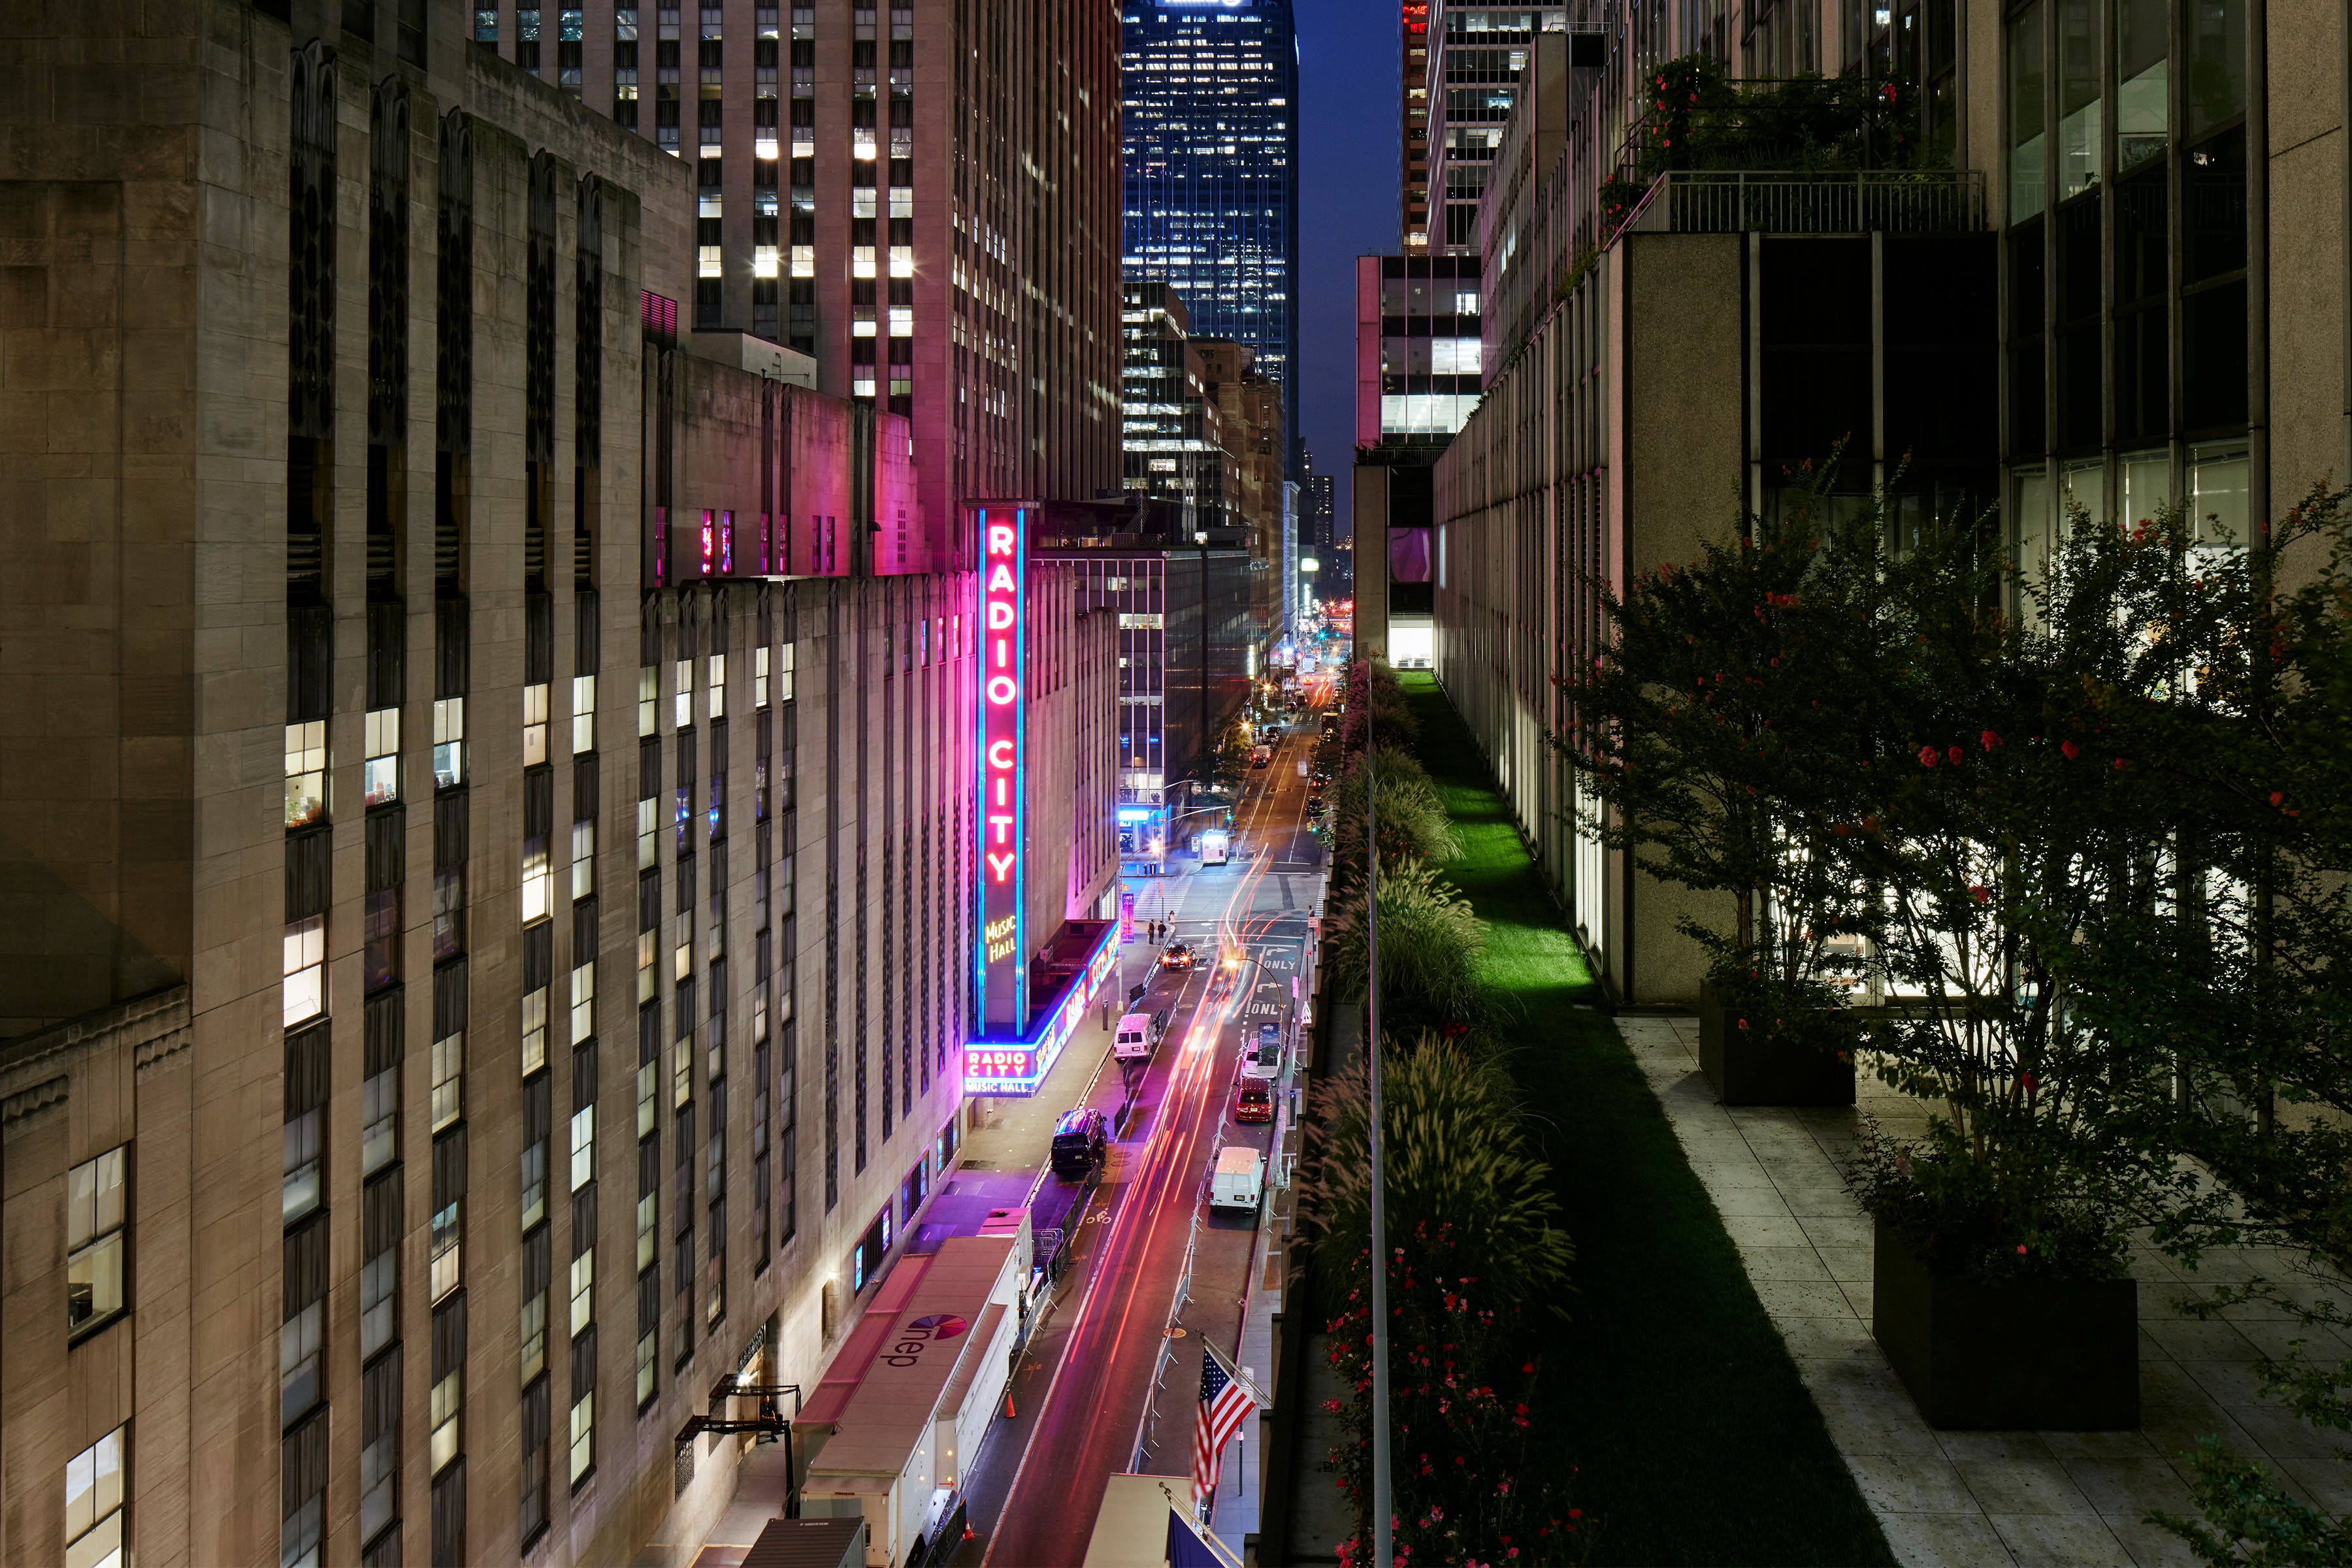 Radio City Music Hall as seen from Club Quarters Hotel, opposite Rockefeller Center